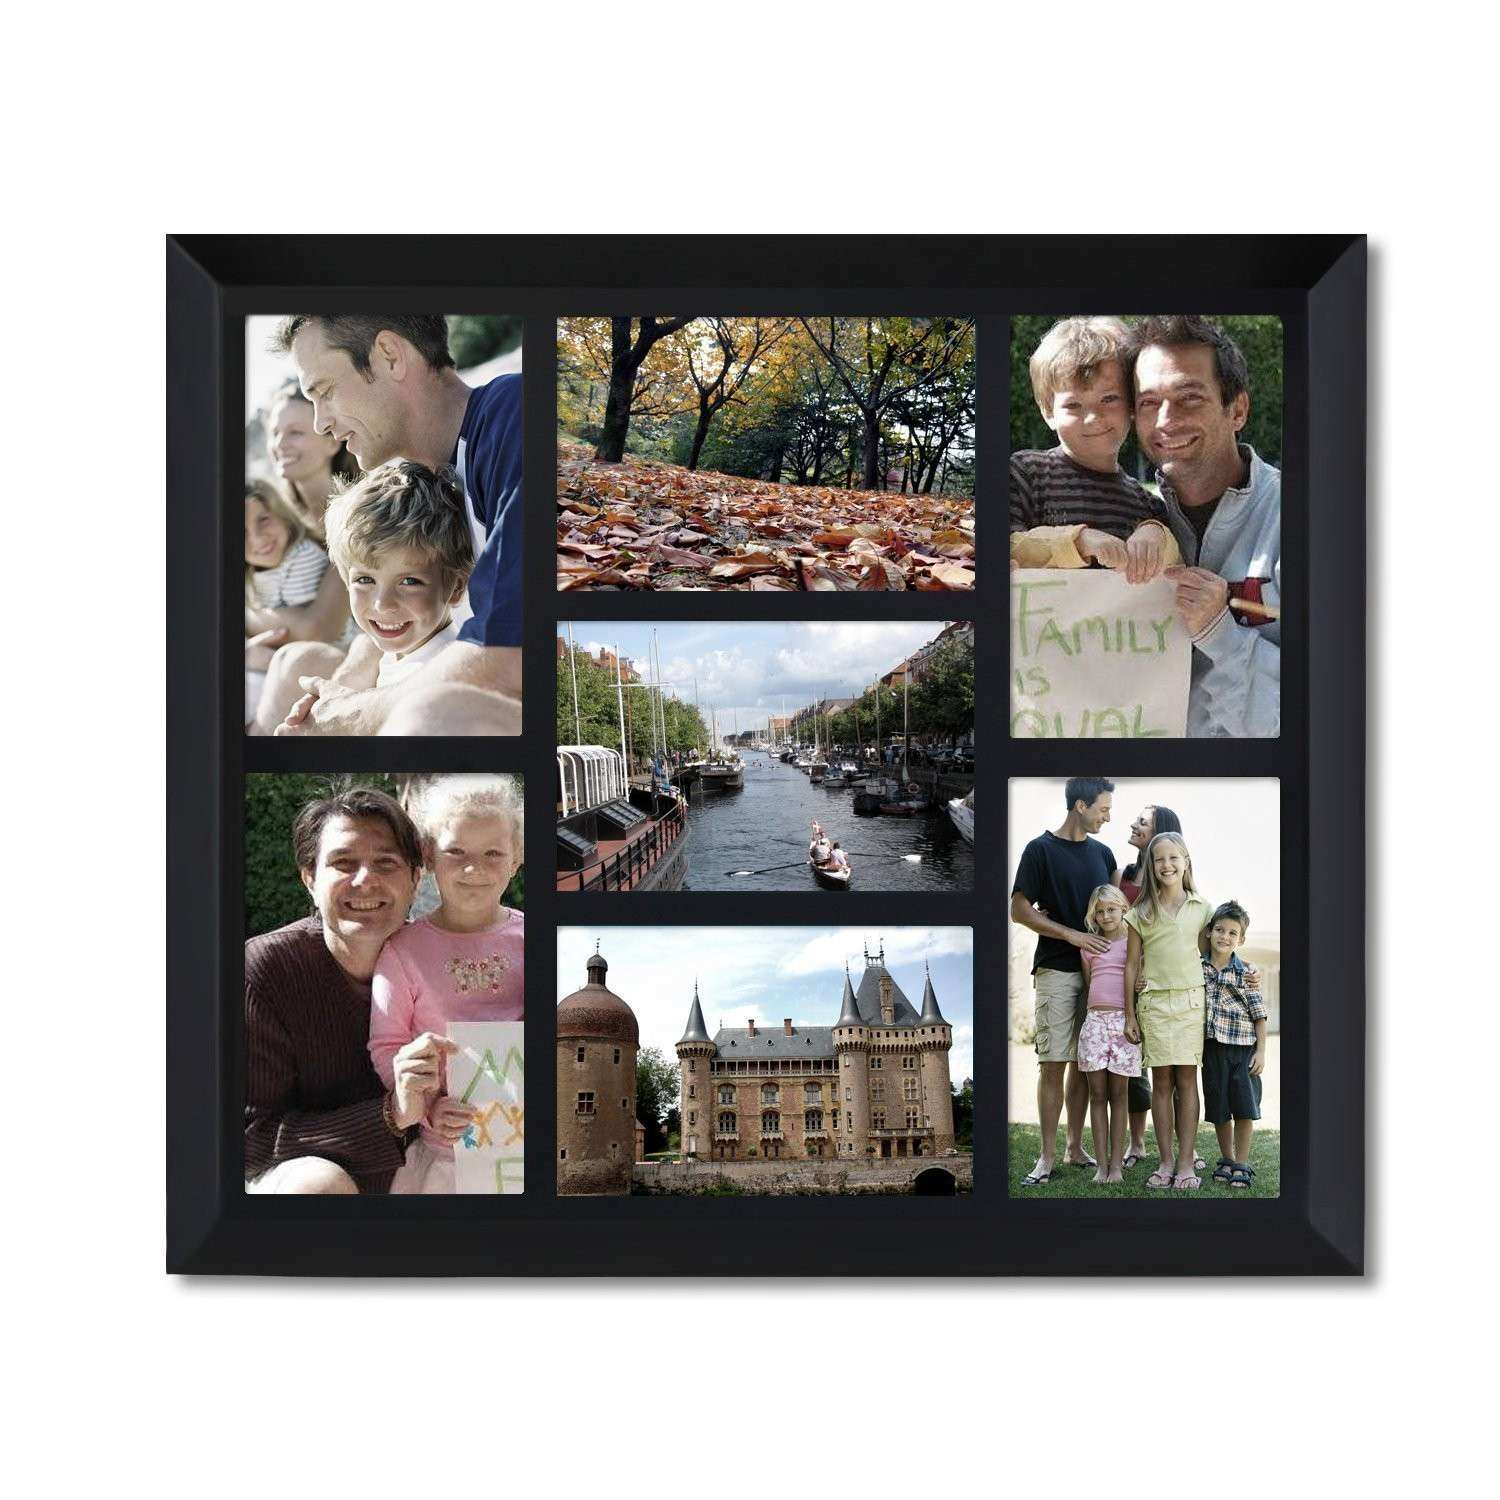 Adeco Decorative Black Wood Wall Hanging Collage Picture Frame